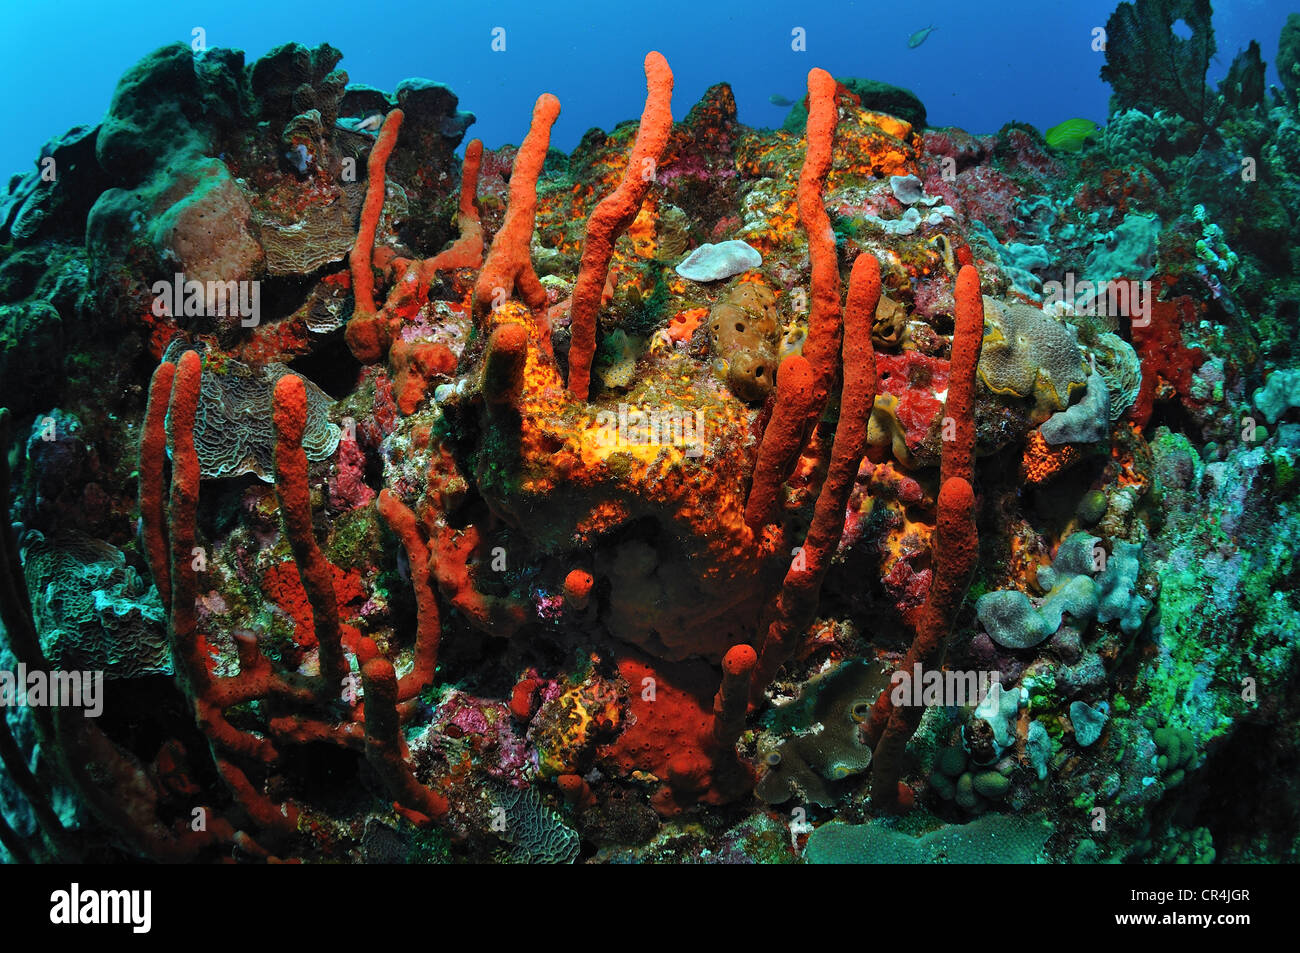 Mexico, Quintana Roo State, Carribean sea, coral reef - Stock Image